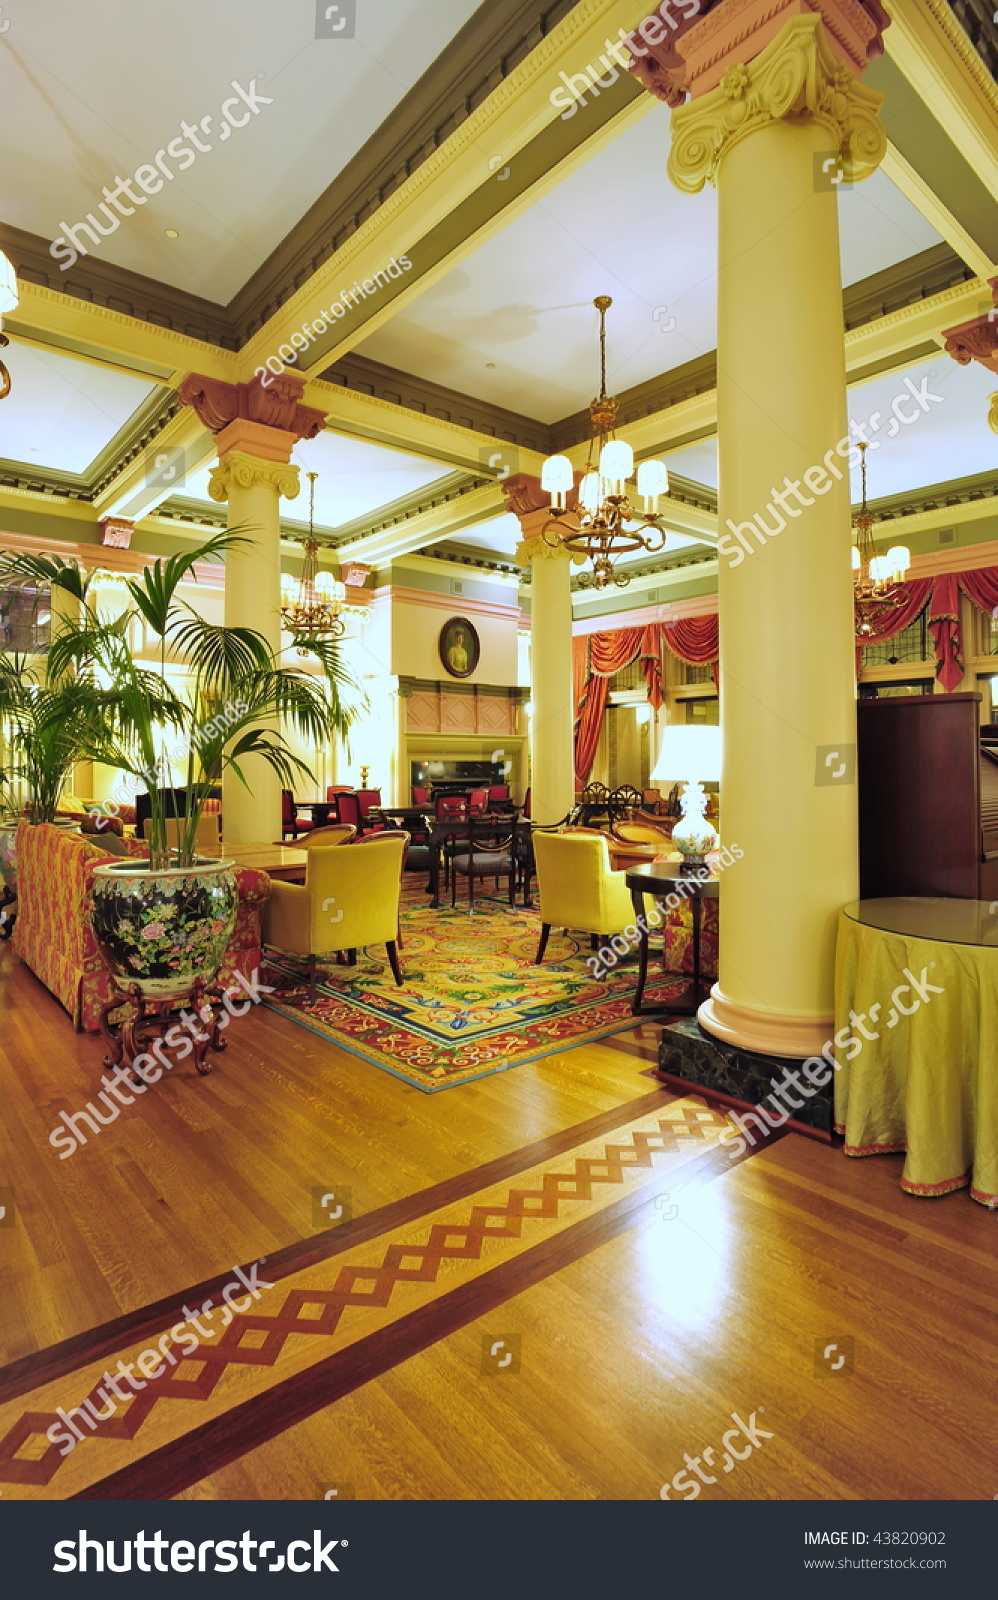 Historic Victorian Style Hotel Lobby Interior Look Stock Photo 43820902 : Shutterstock